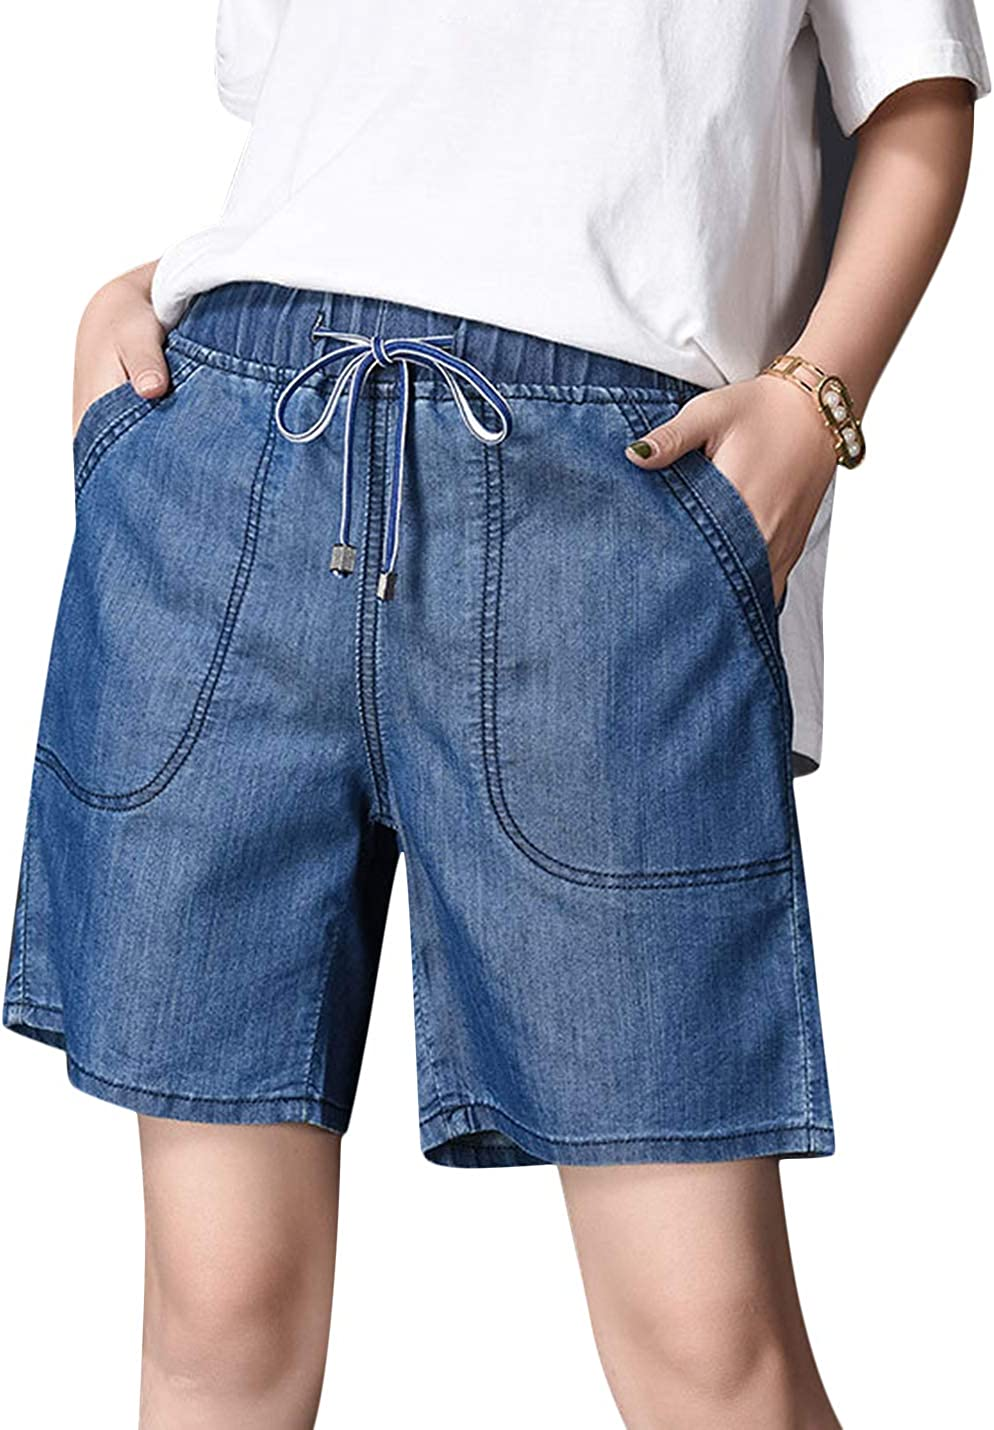 Uaneo Women's Spring High Elastic Waist Bow Knot Denim Shorts with Pockets (Dark Blue, X-Small)